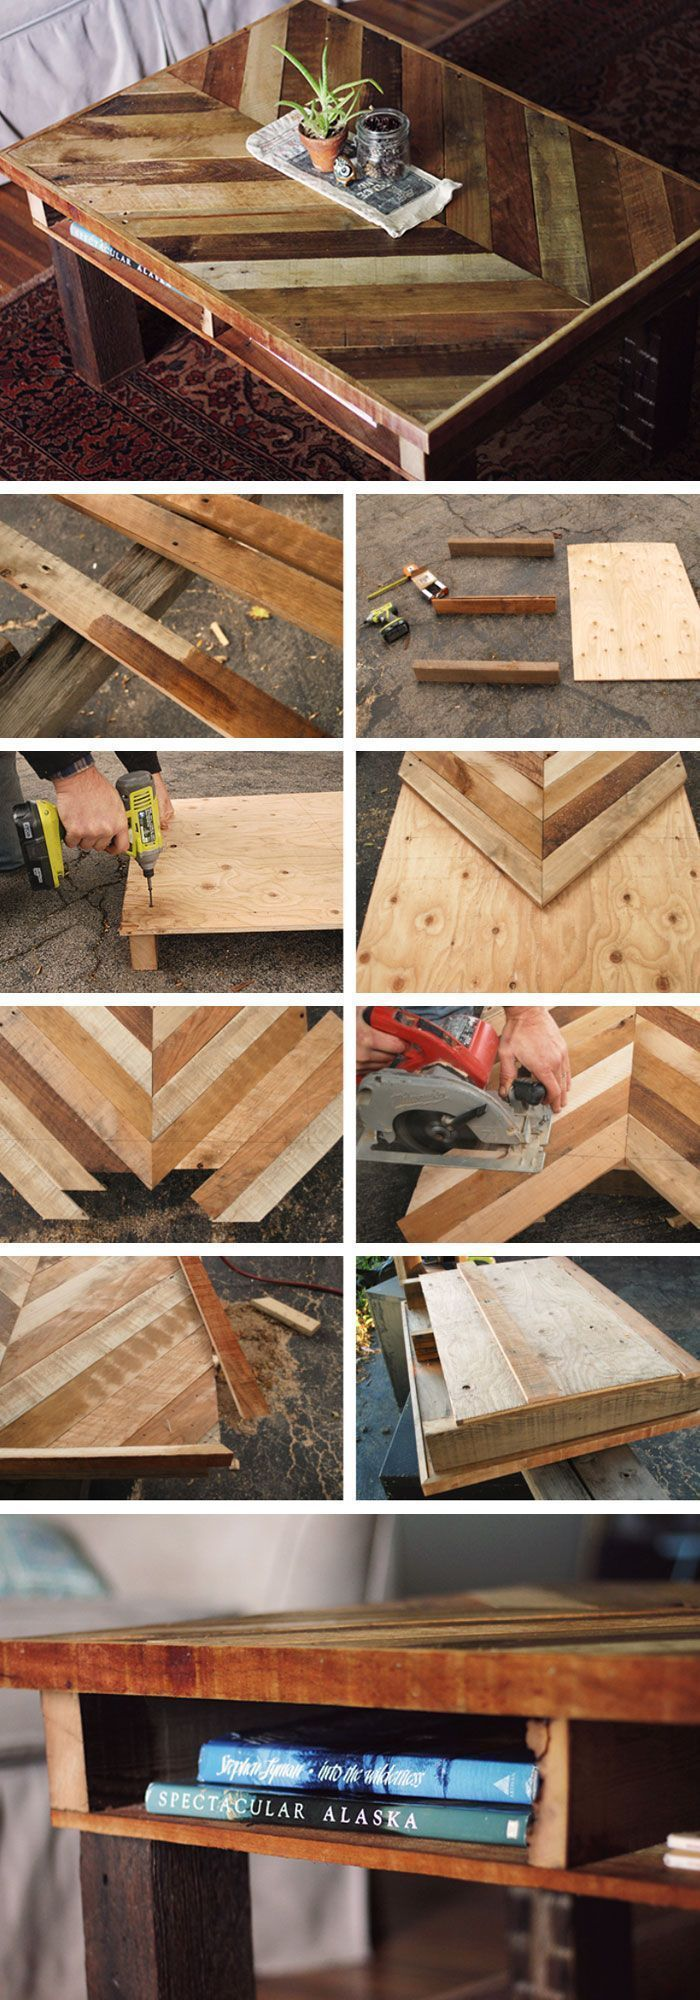 Home Design Ideas: Home Decorating Ideas For Cheap Home Decorating Ideas For Cheap DIY Pallet Coffee Table | DIY #Home #Decor Ideas on a Budget | DIY #Home Decorat... #homedecorcheap